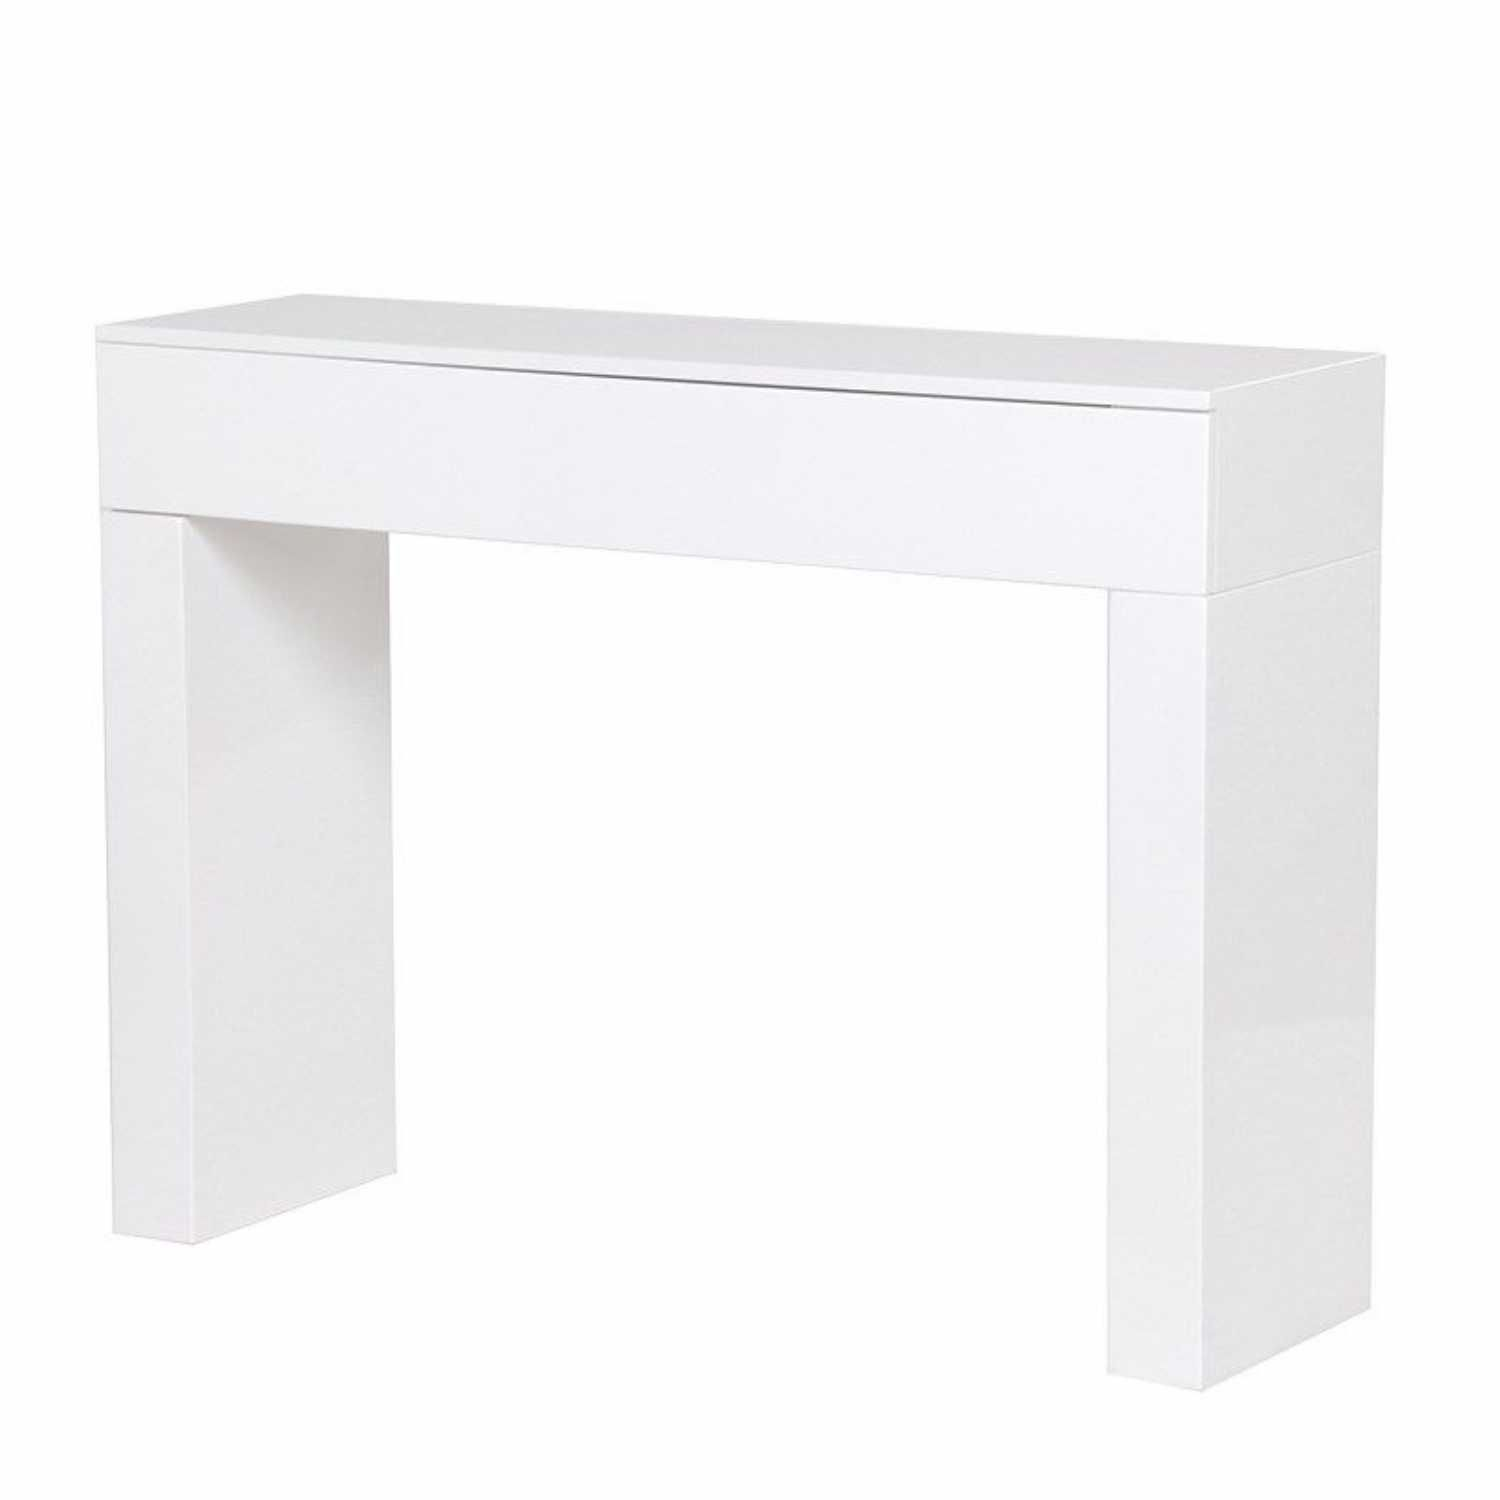 White high gloss slab console table httpargharts white high gloss slab console table geotapseo Gallery